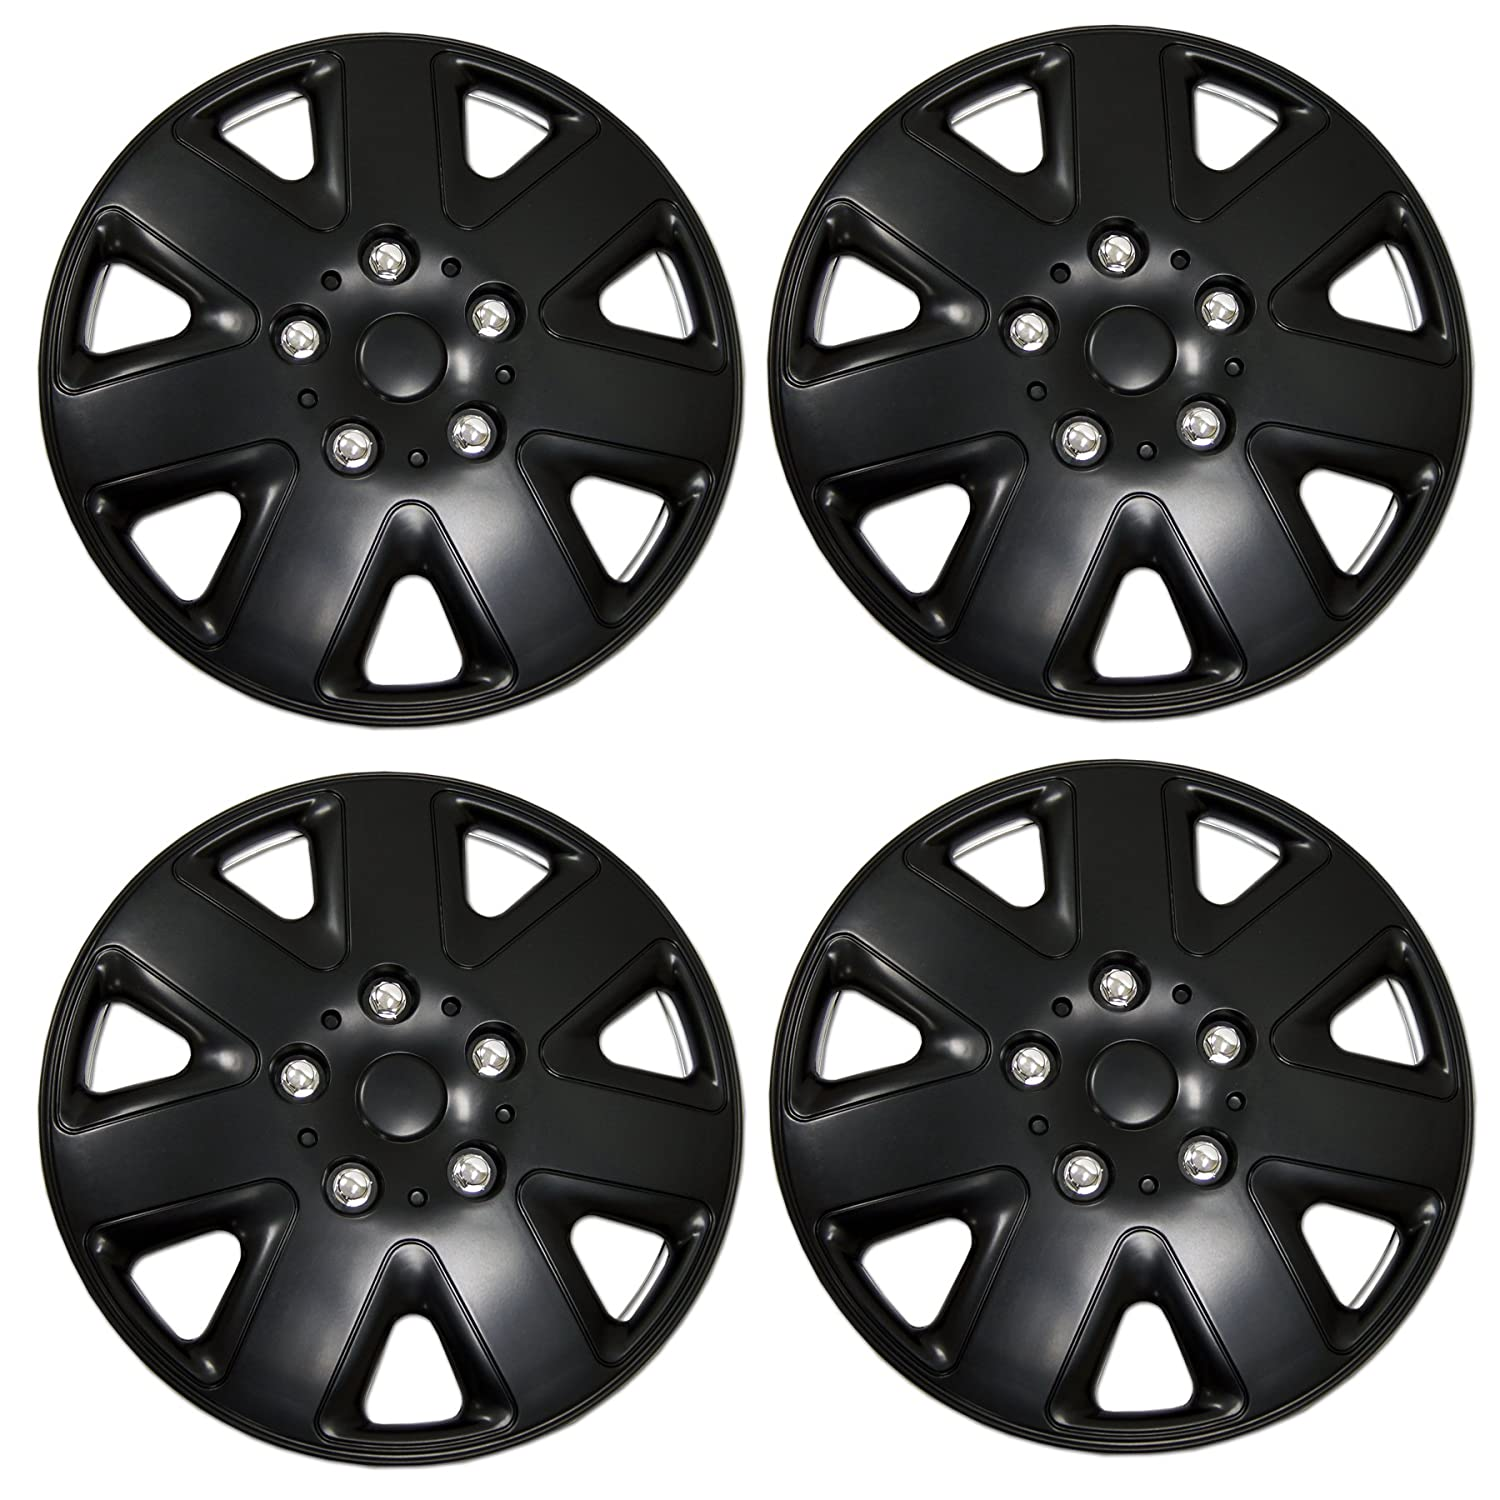 TuningPros WSC3-026B15 4pcs Set Snap-On Type (Pop-On) 15-Inches Matte Black Hubcaps Wheel Cover